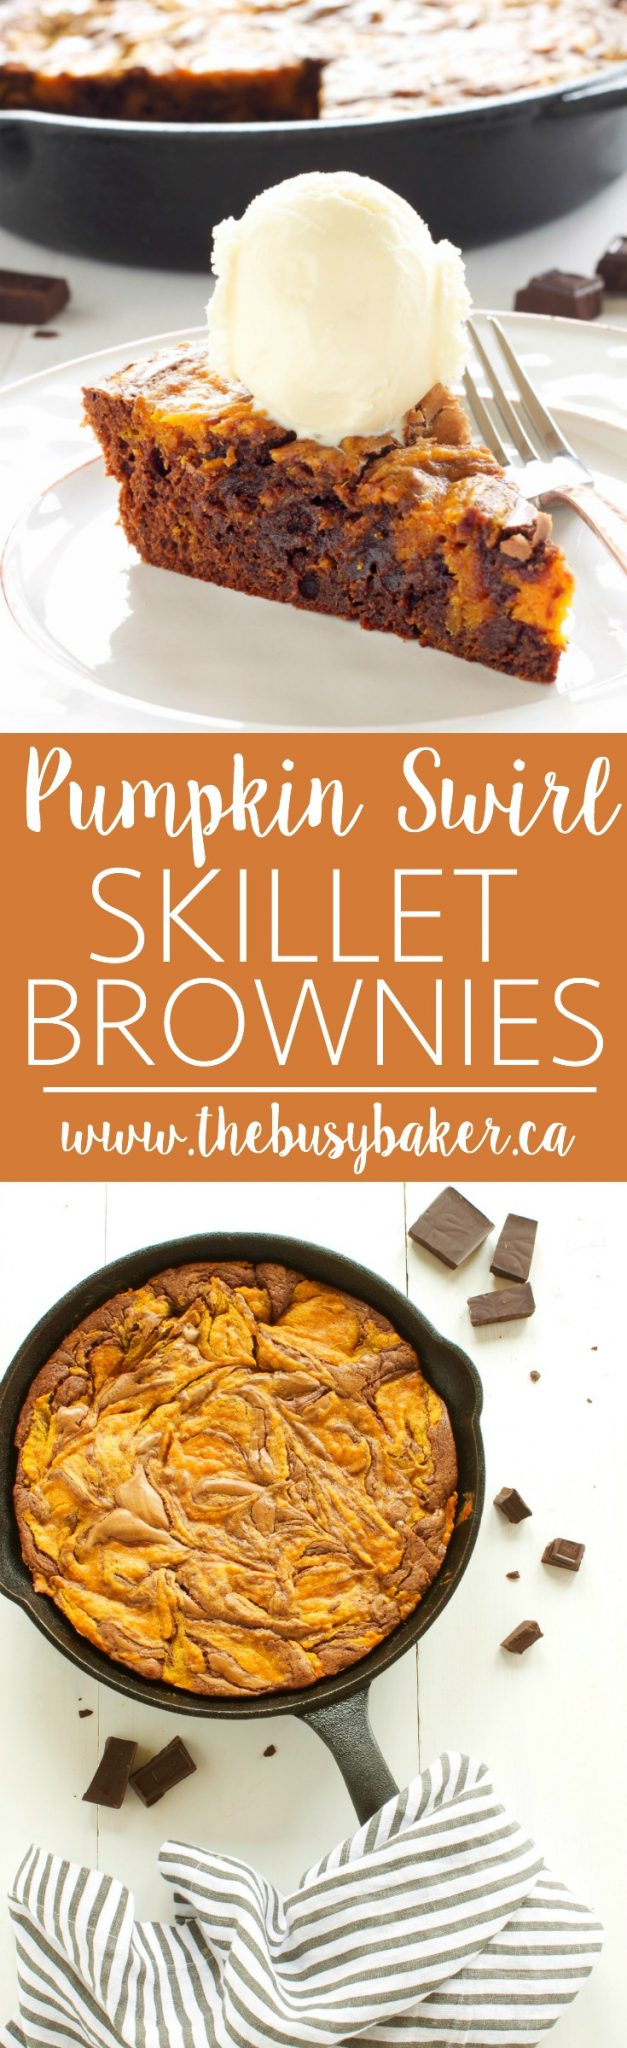 This super simple Pumpkin Swirl Skillet Brownies Recipe pairs chocolate and pumpkin - the most delicious fall-inspired combination! Recipe from thebusybaker.ca! via @busybakerblog